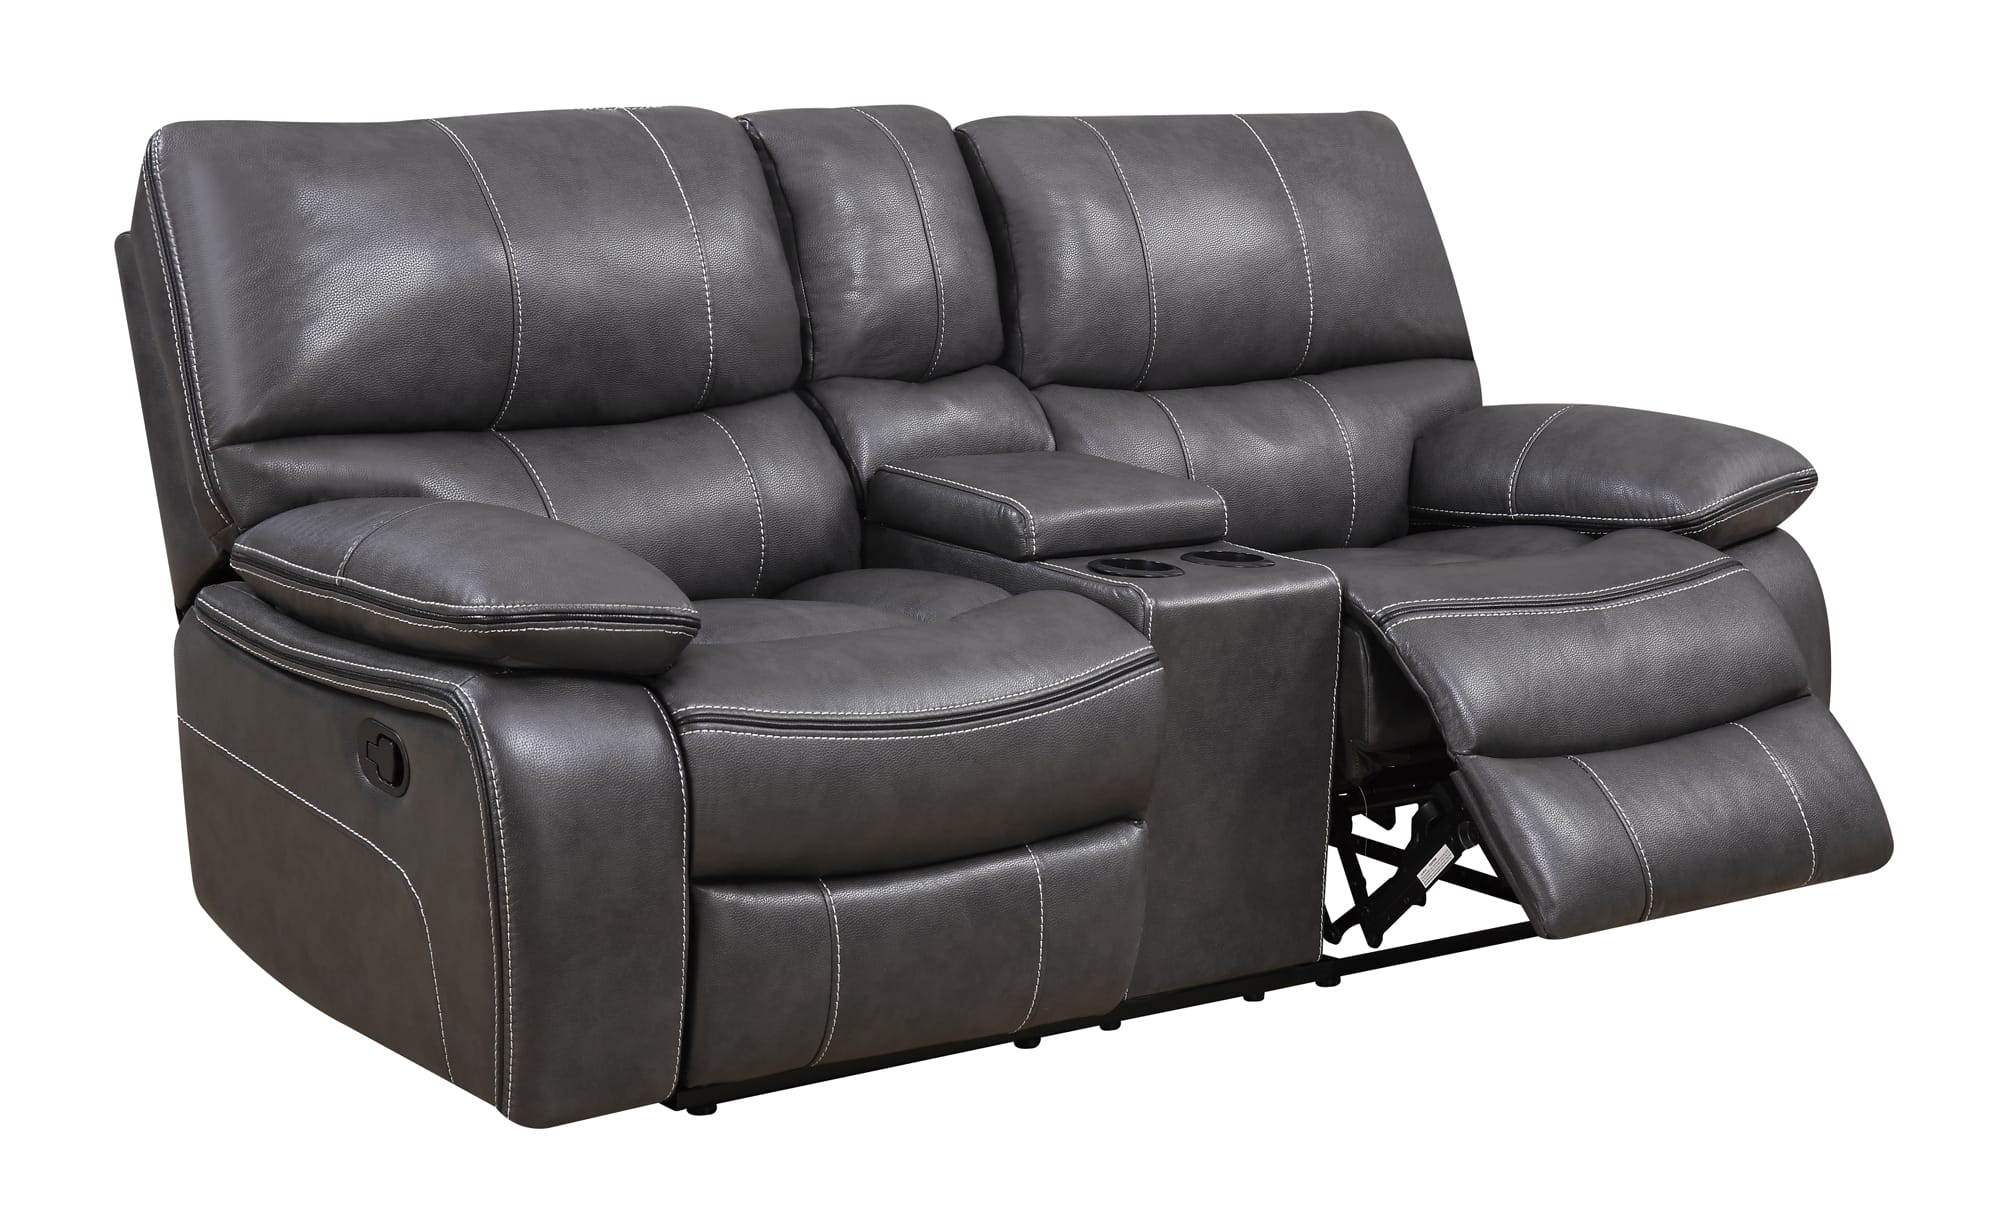 gray leather sofa recliner legacy u0040 grey black console reclining loveseat by